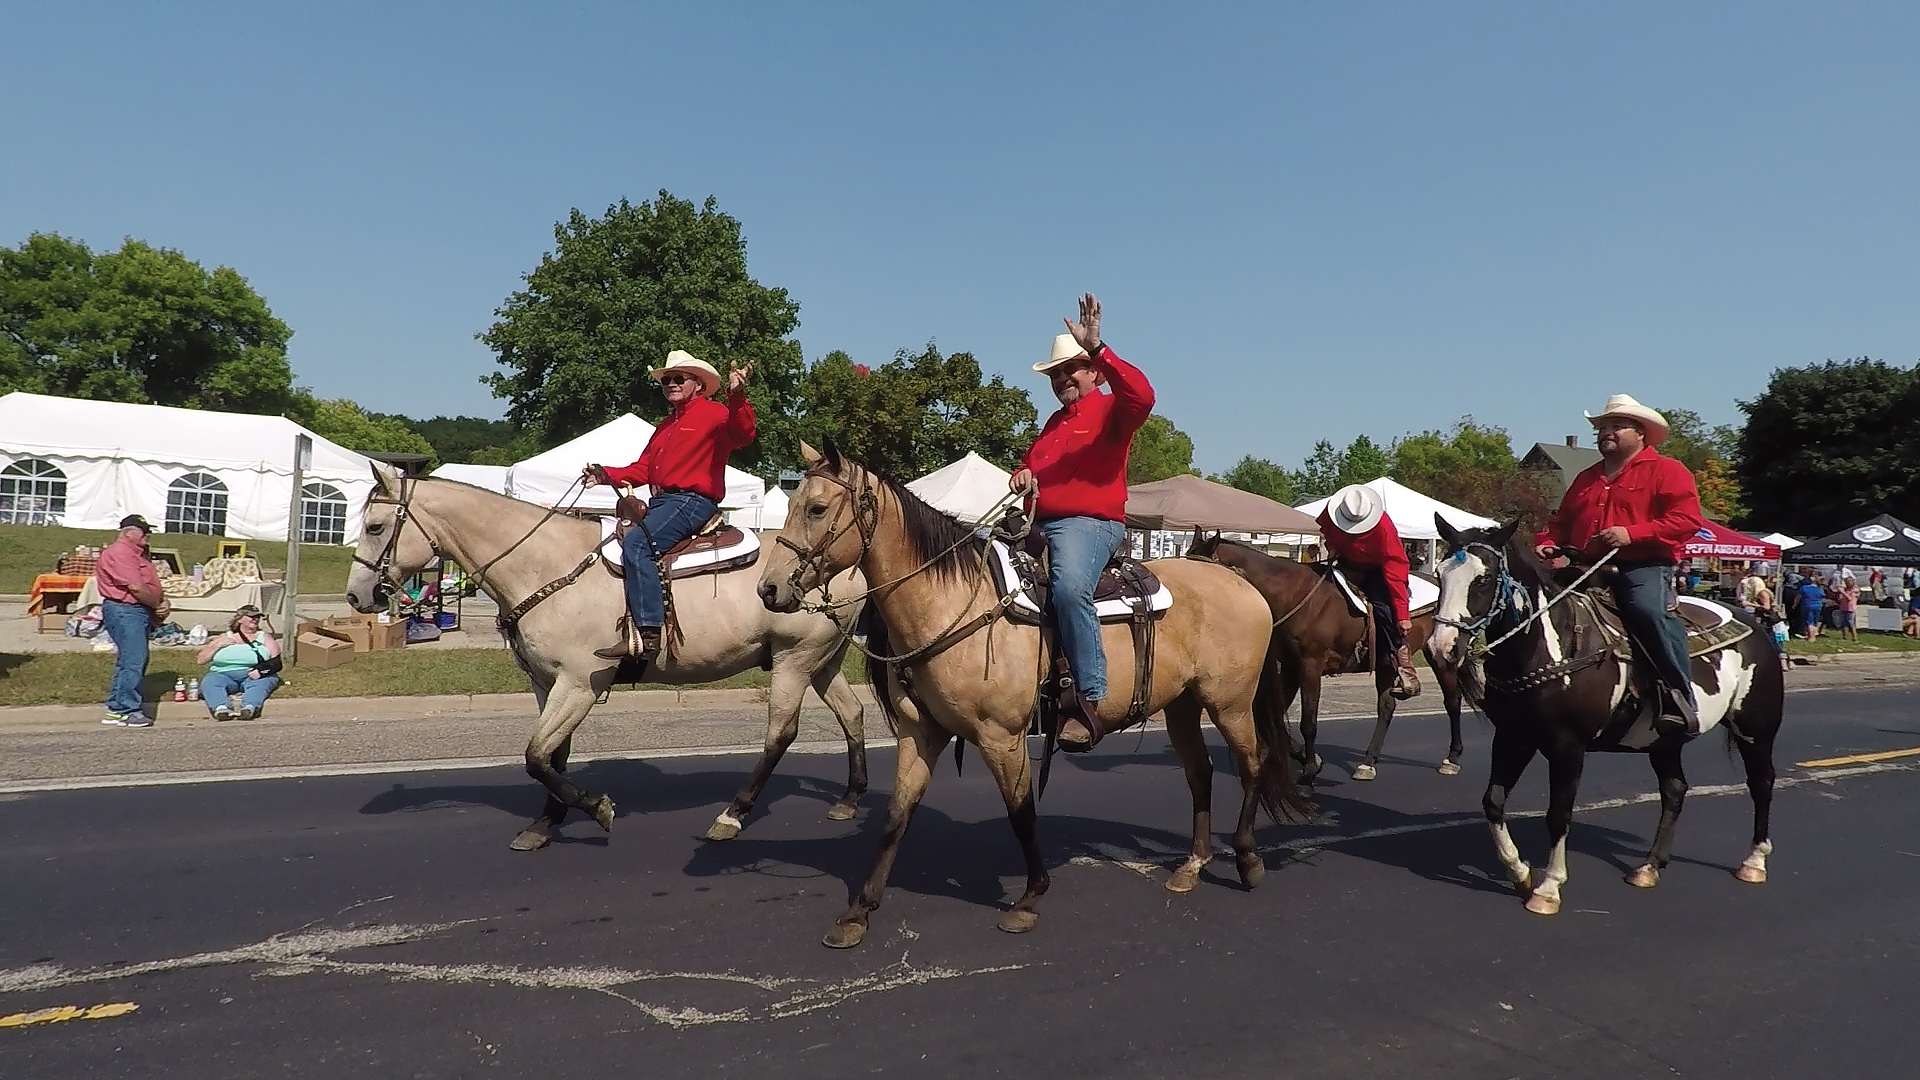 Cowboys in red shirts wave from horseback as they ride down a small-town street in a parade